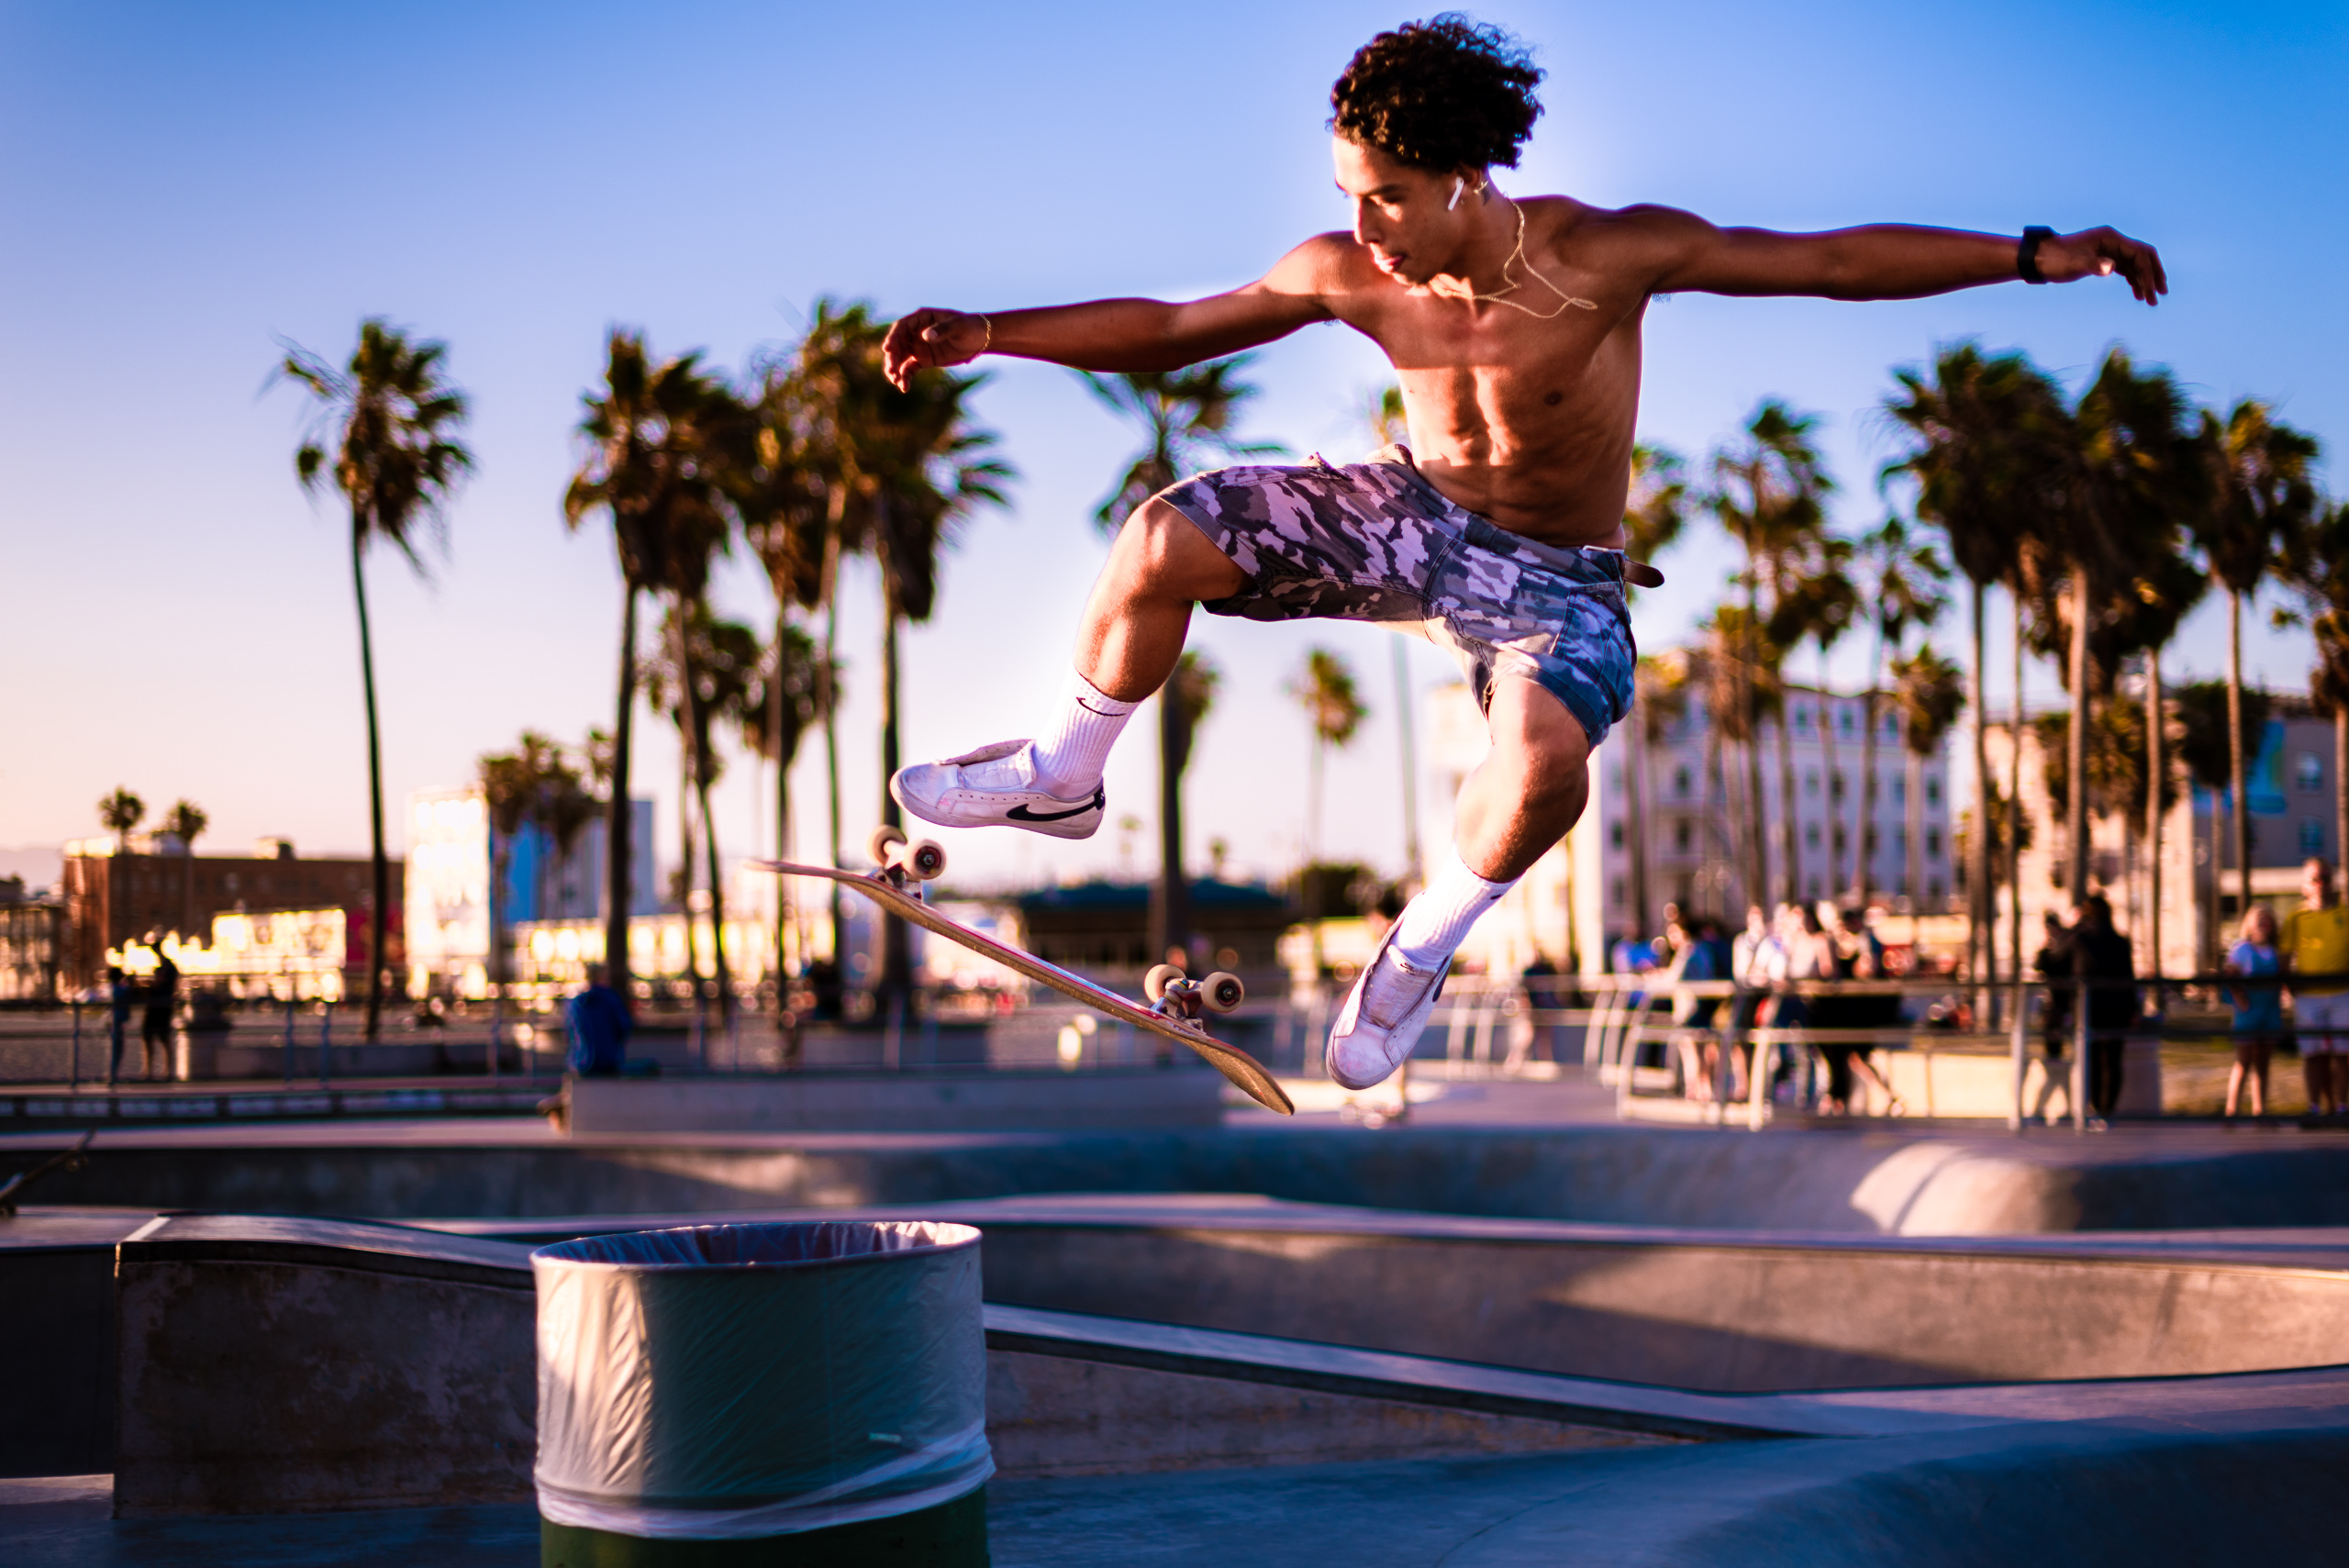 a skater at the Venice Skate Park leaps over a 55 gallon drum